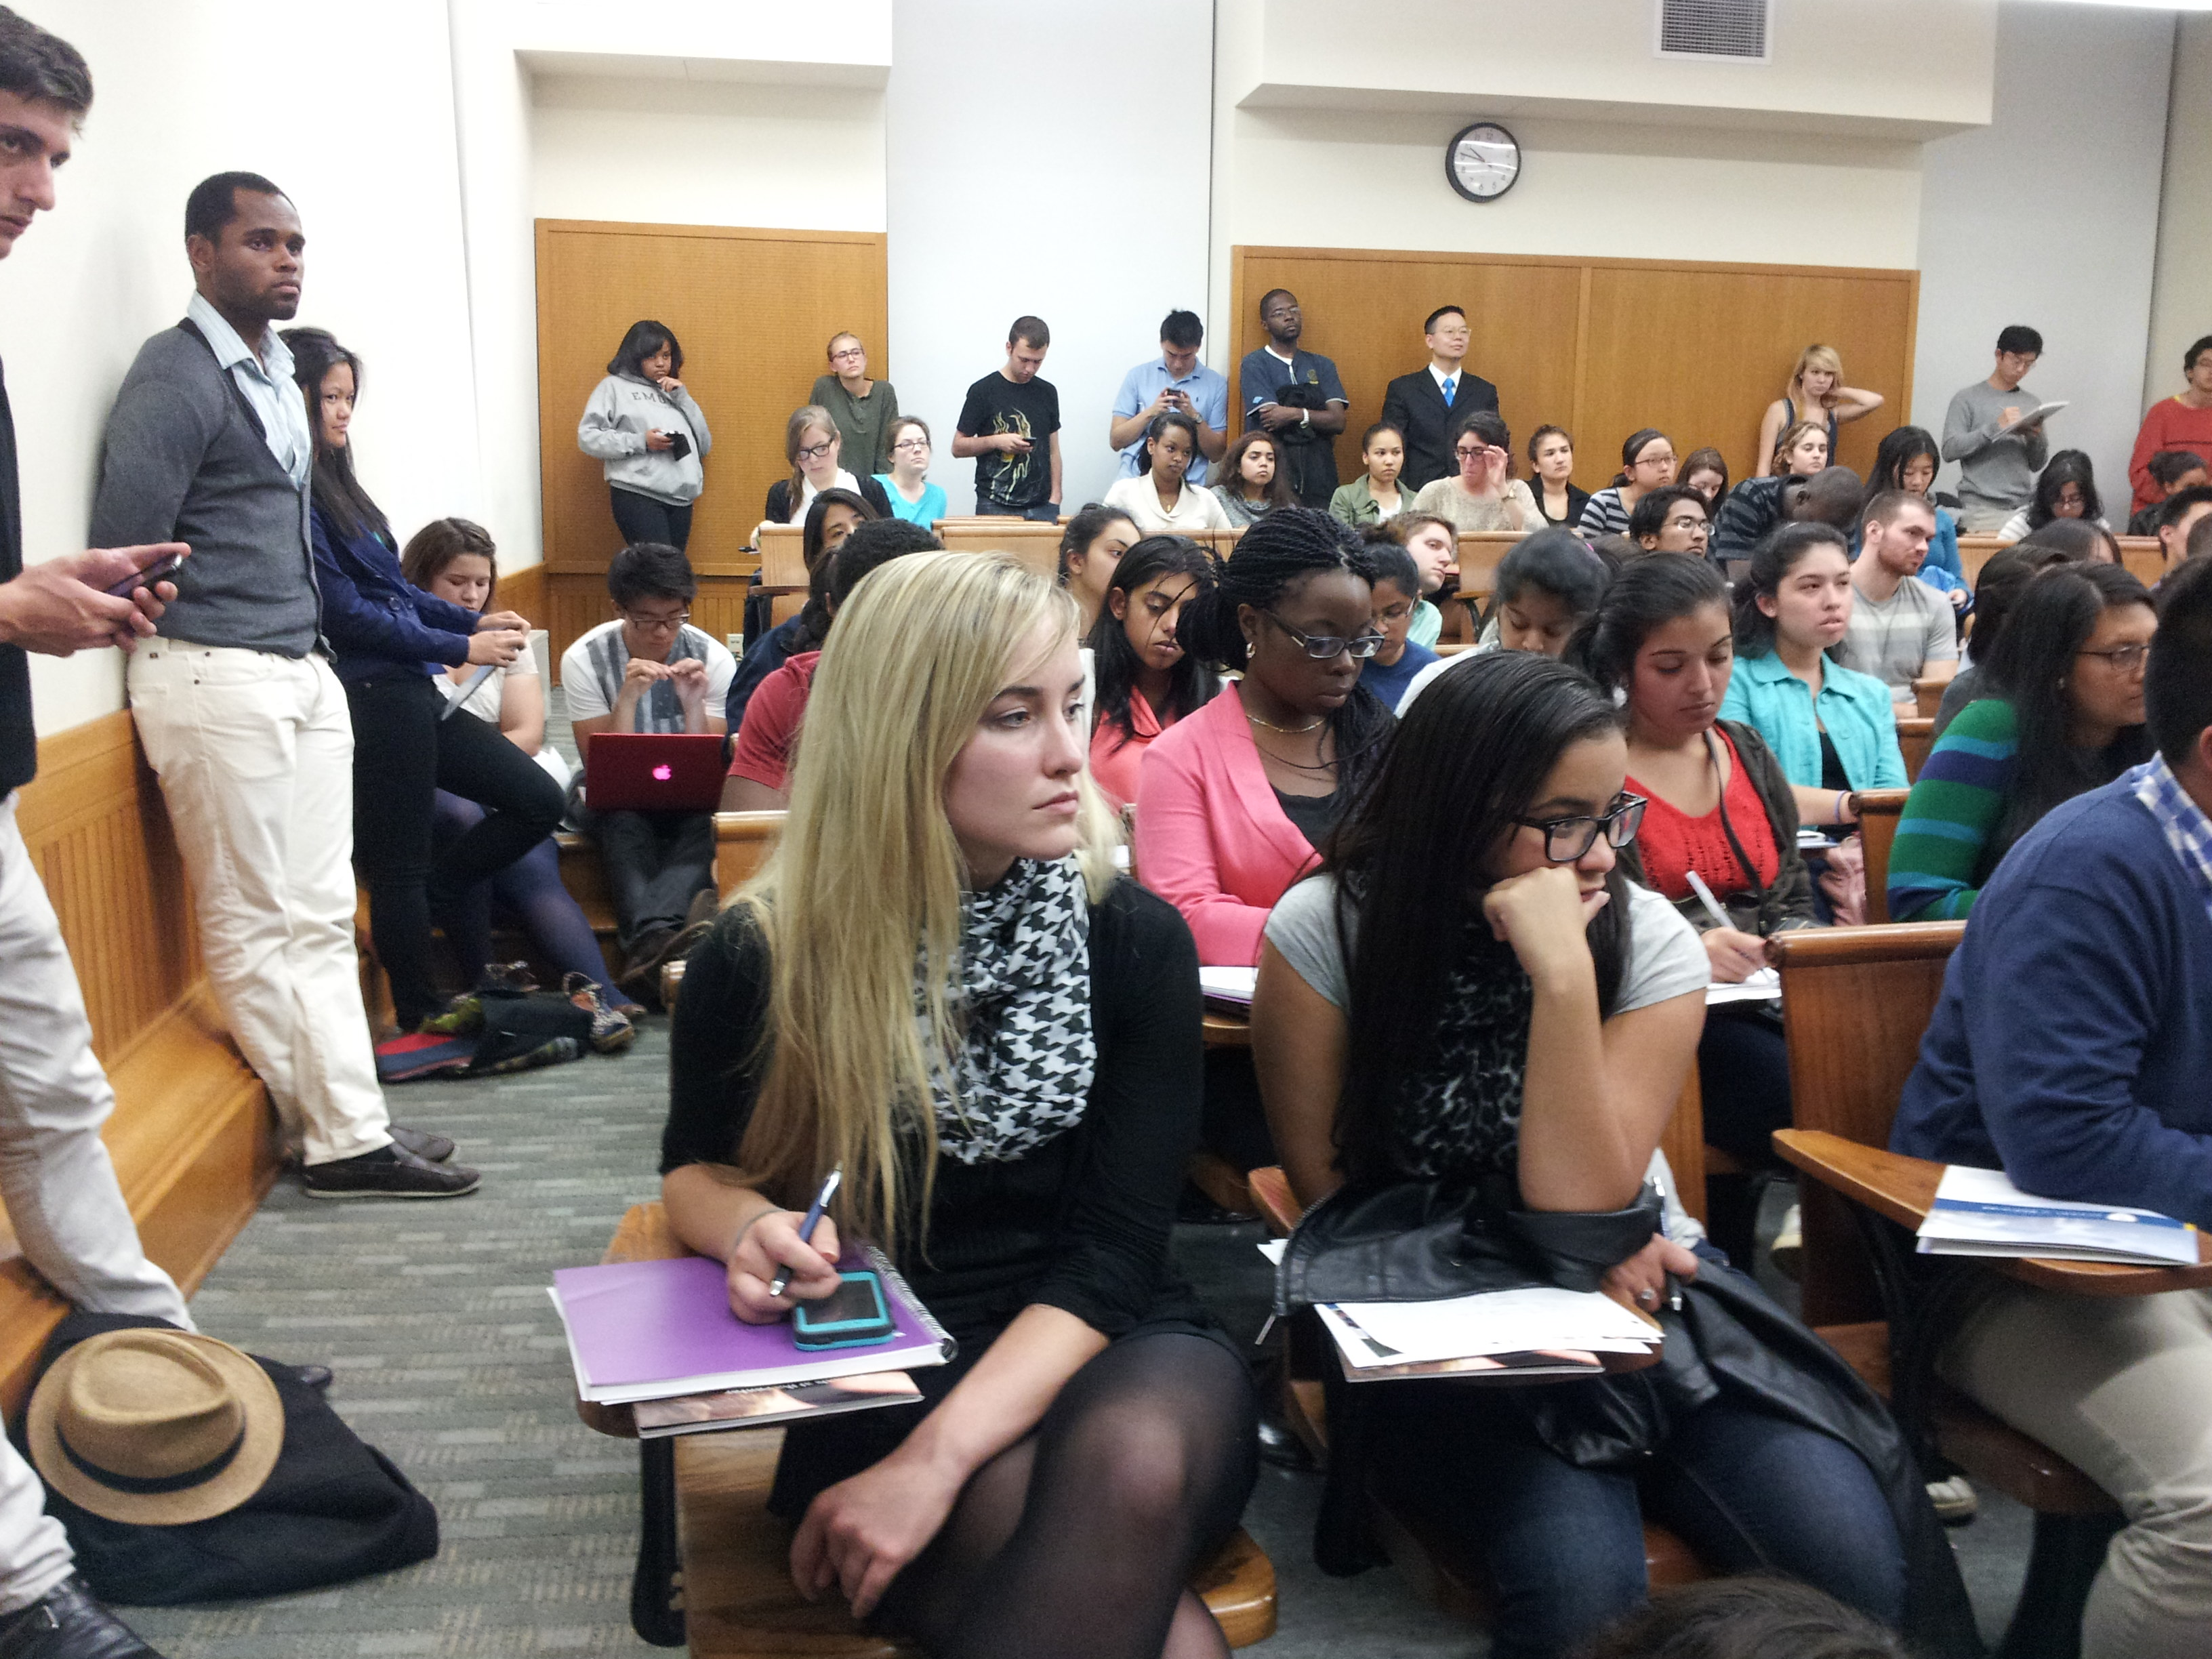 Pictures from Admissions 101: Meet the Deans Panel | Charles